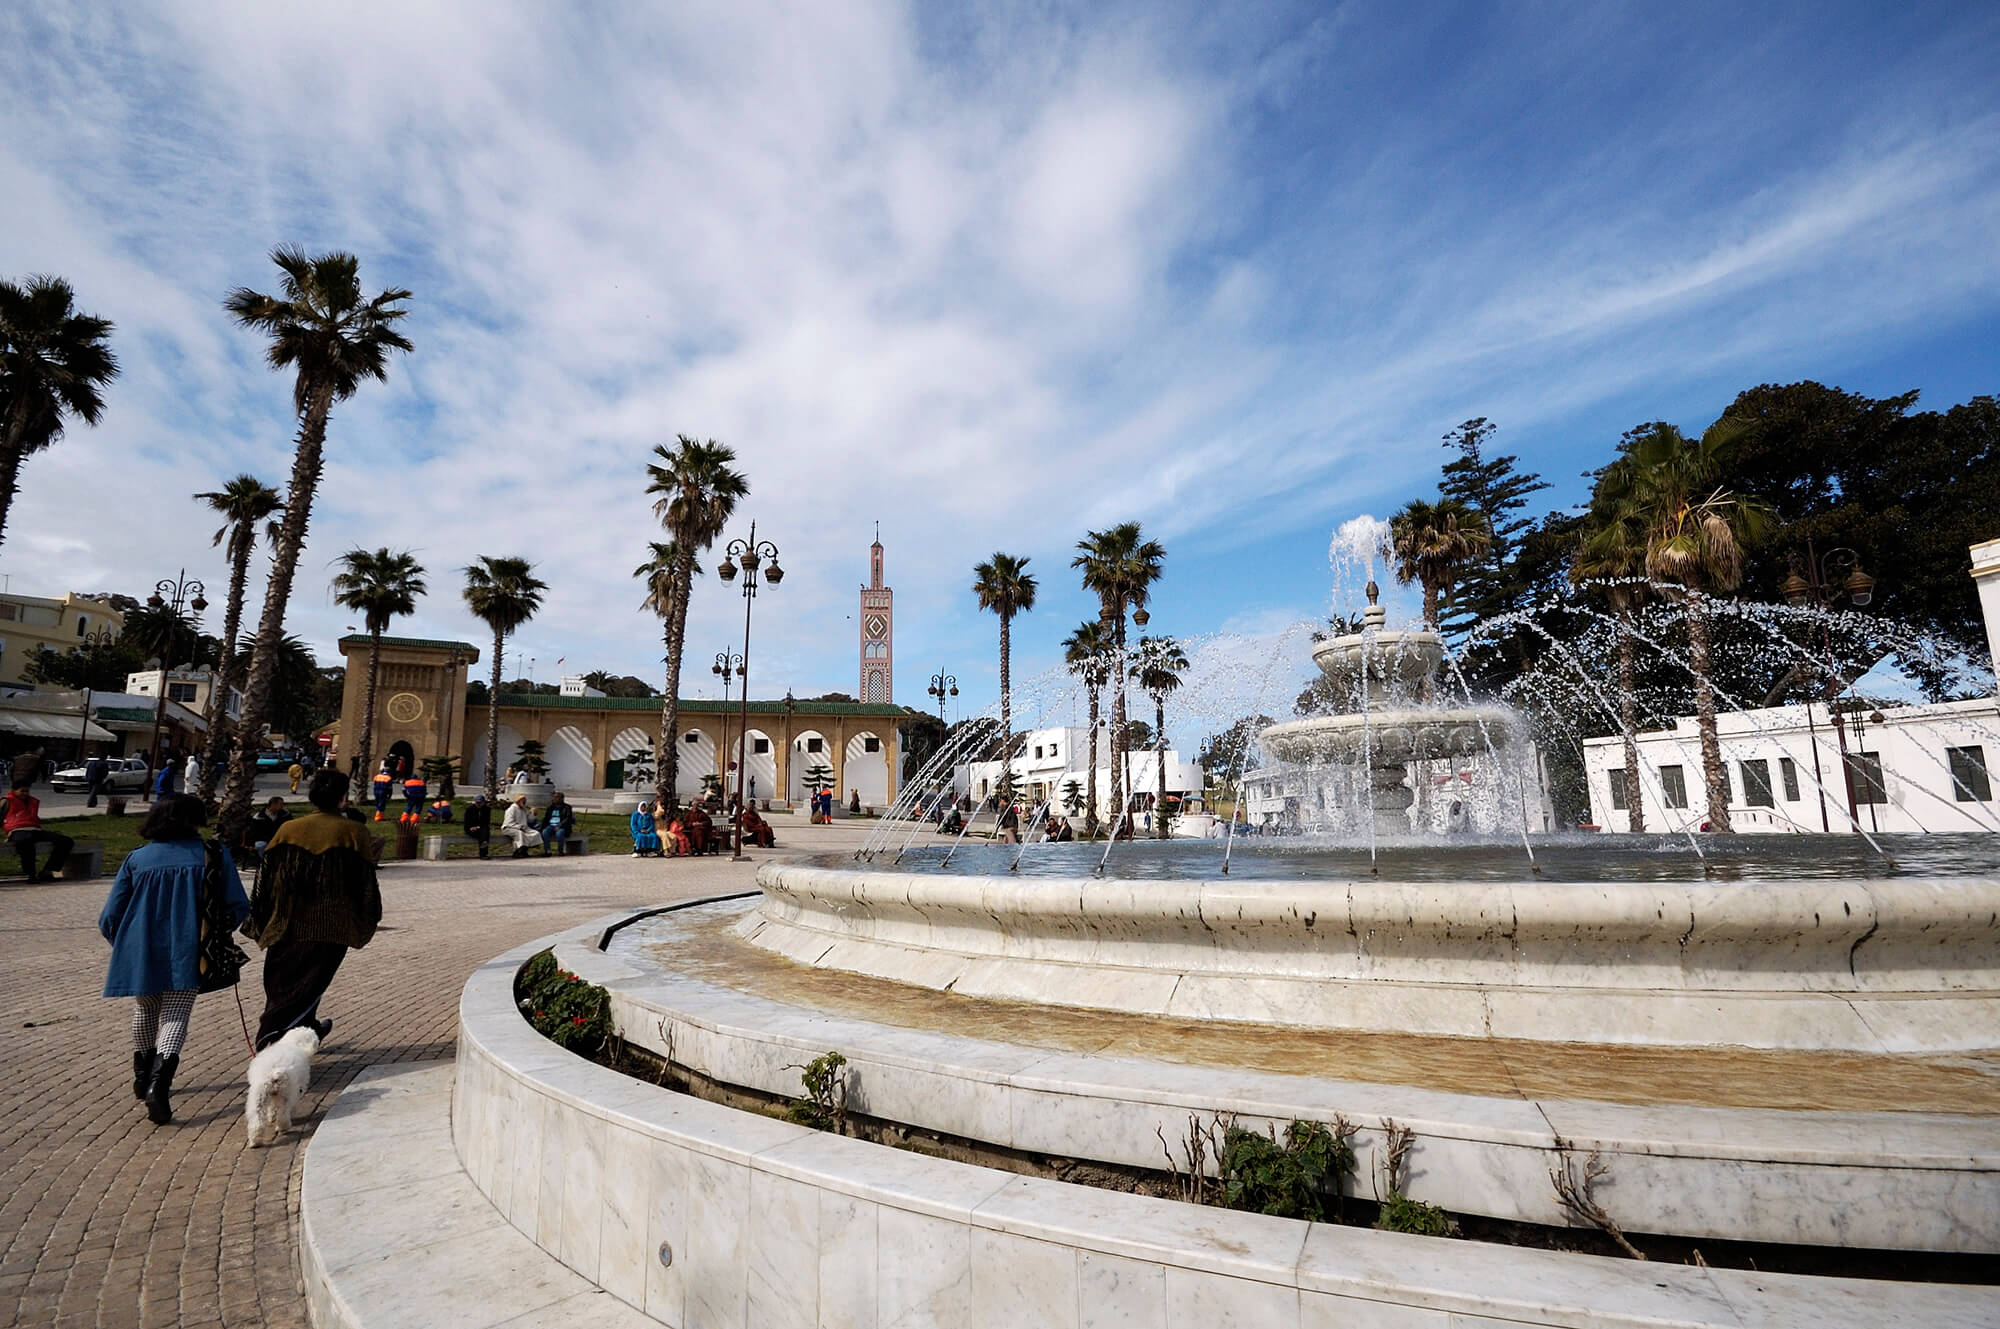 Sahara Desert Tour - What to Do and See in Tangier - The Exciting Port City of Morocco - Grand Socco